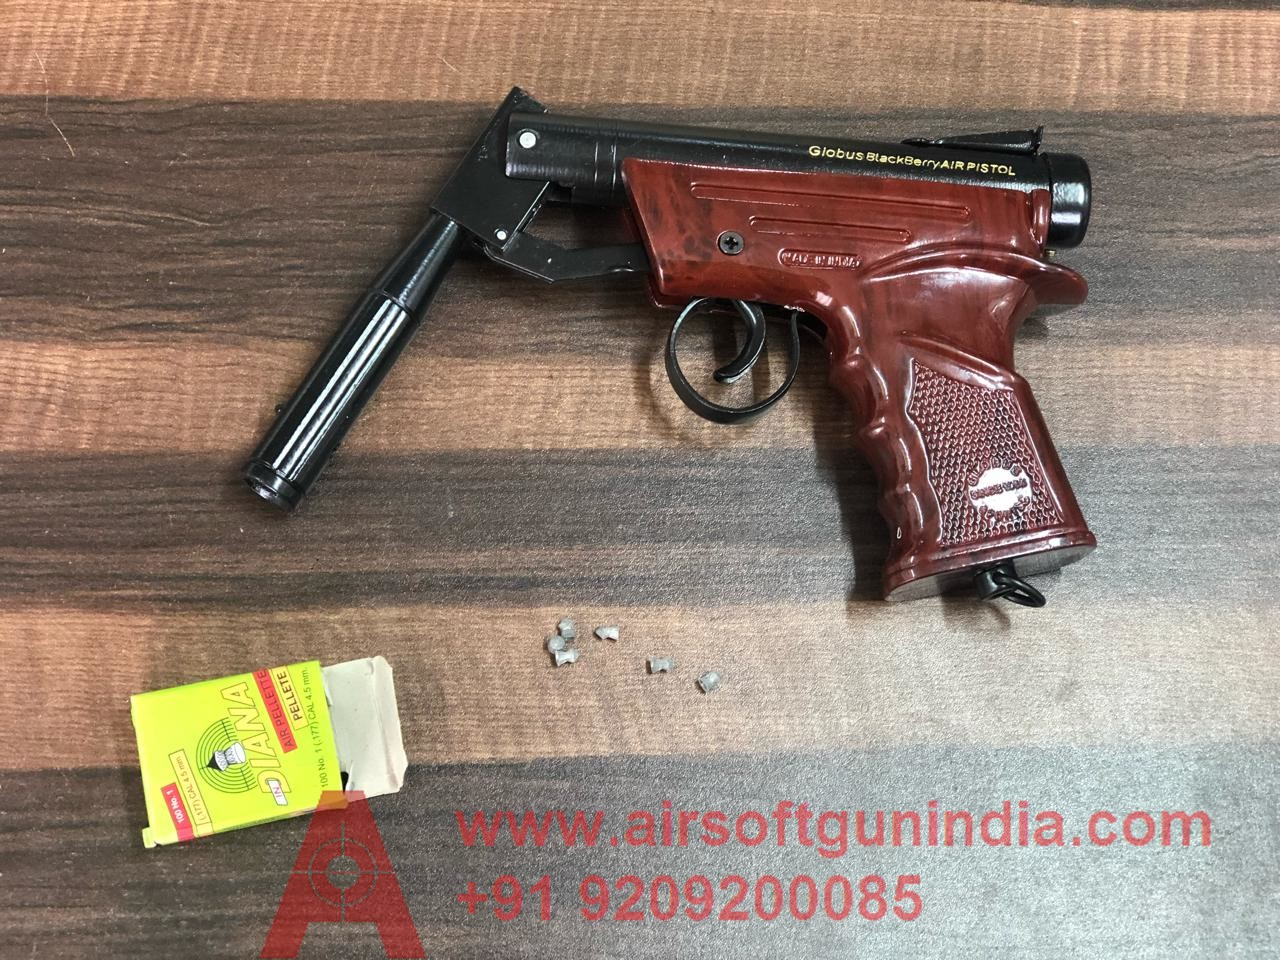 GLOBUS Air Pistol Rose Texture By Airsoft Gun India